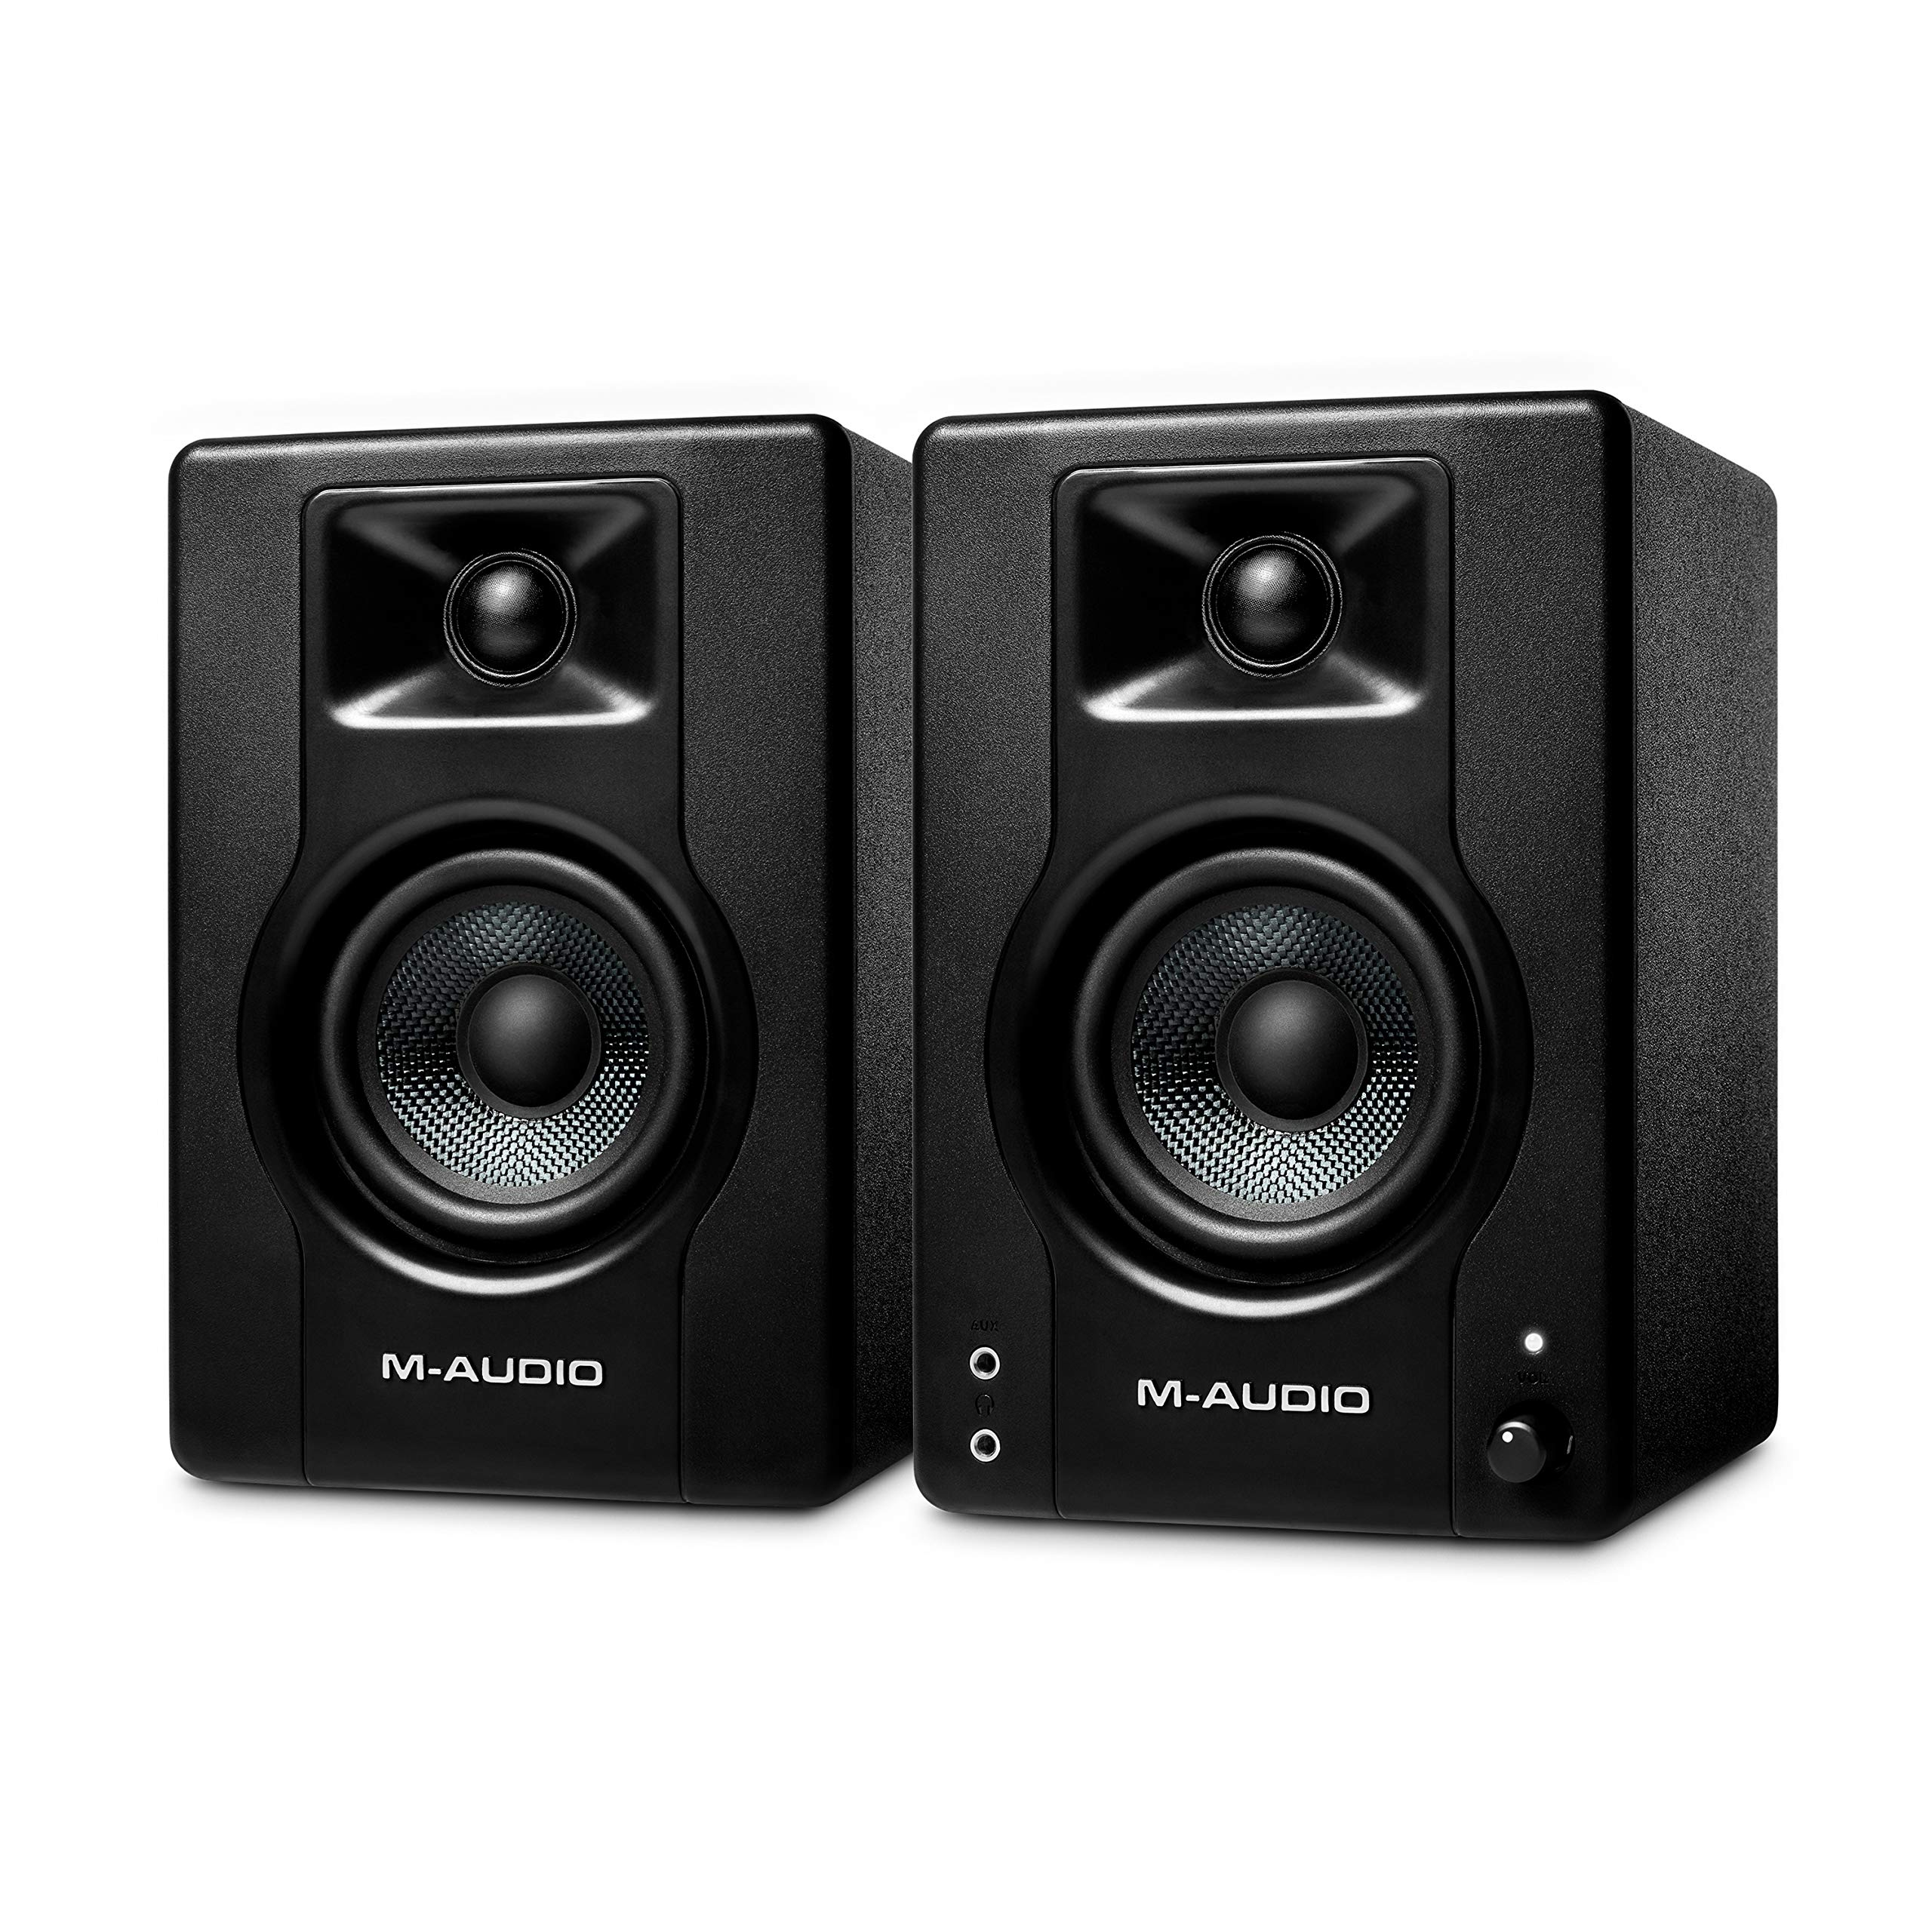 M-Audio BX3 - 120-Watt Powered Desktop Computer Speakers / Studio Monitors for Gaming, Music Production, Live Streaming and Podcasting (Pair)